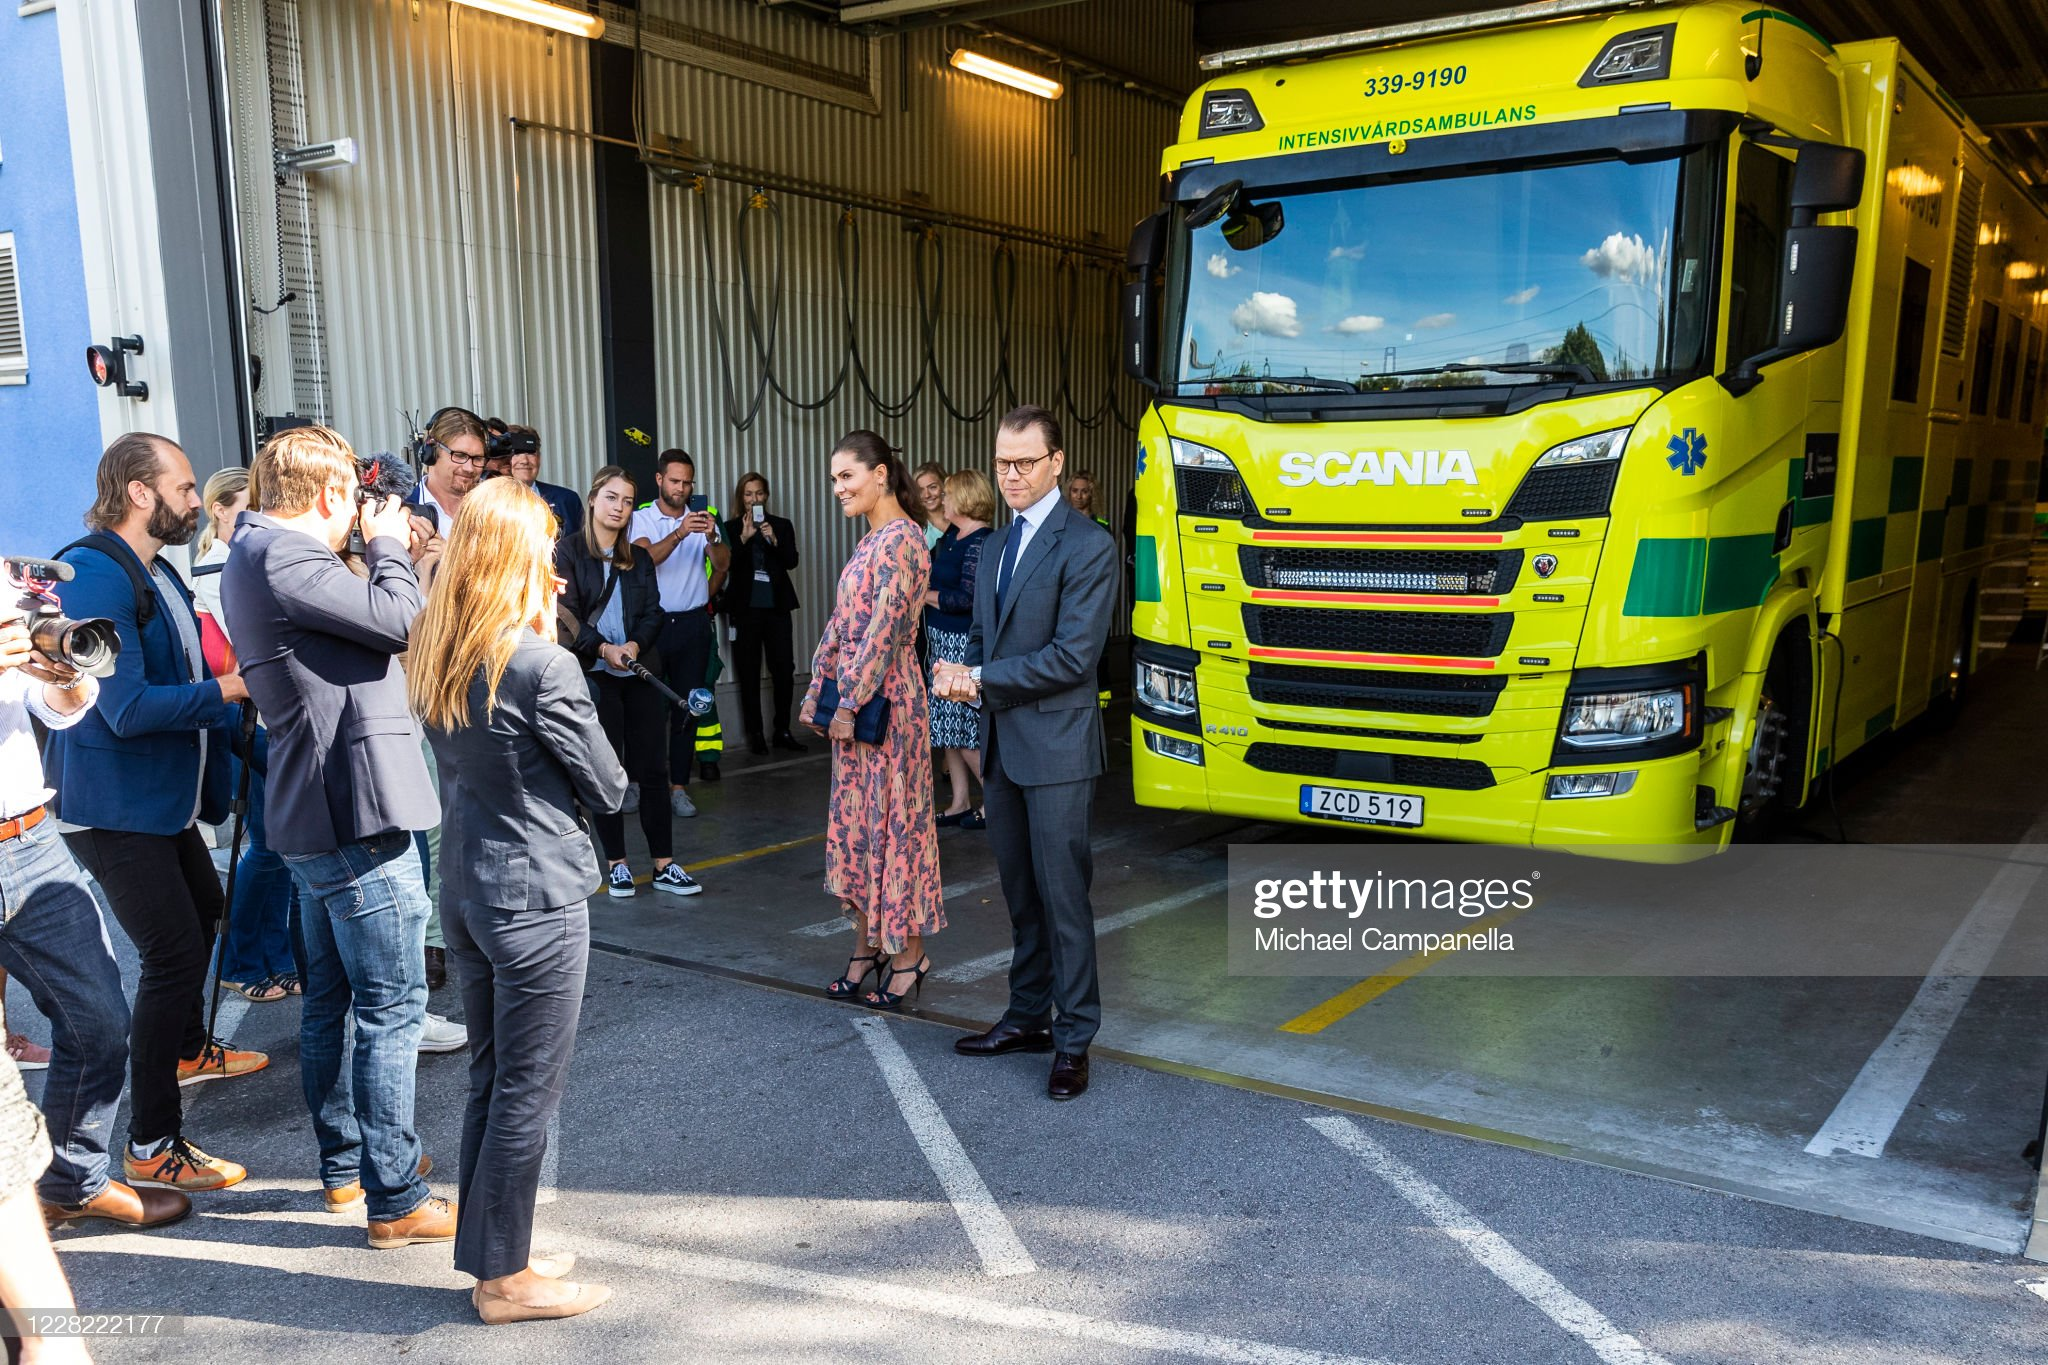 crown-princess-victoria-and-prince-daniel-of-sweden-visit-an-station-picture-id1228222177